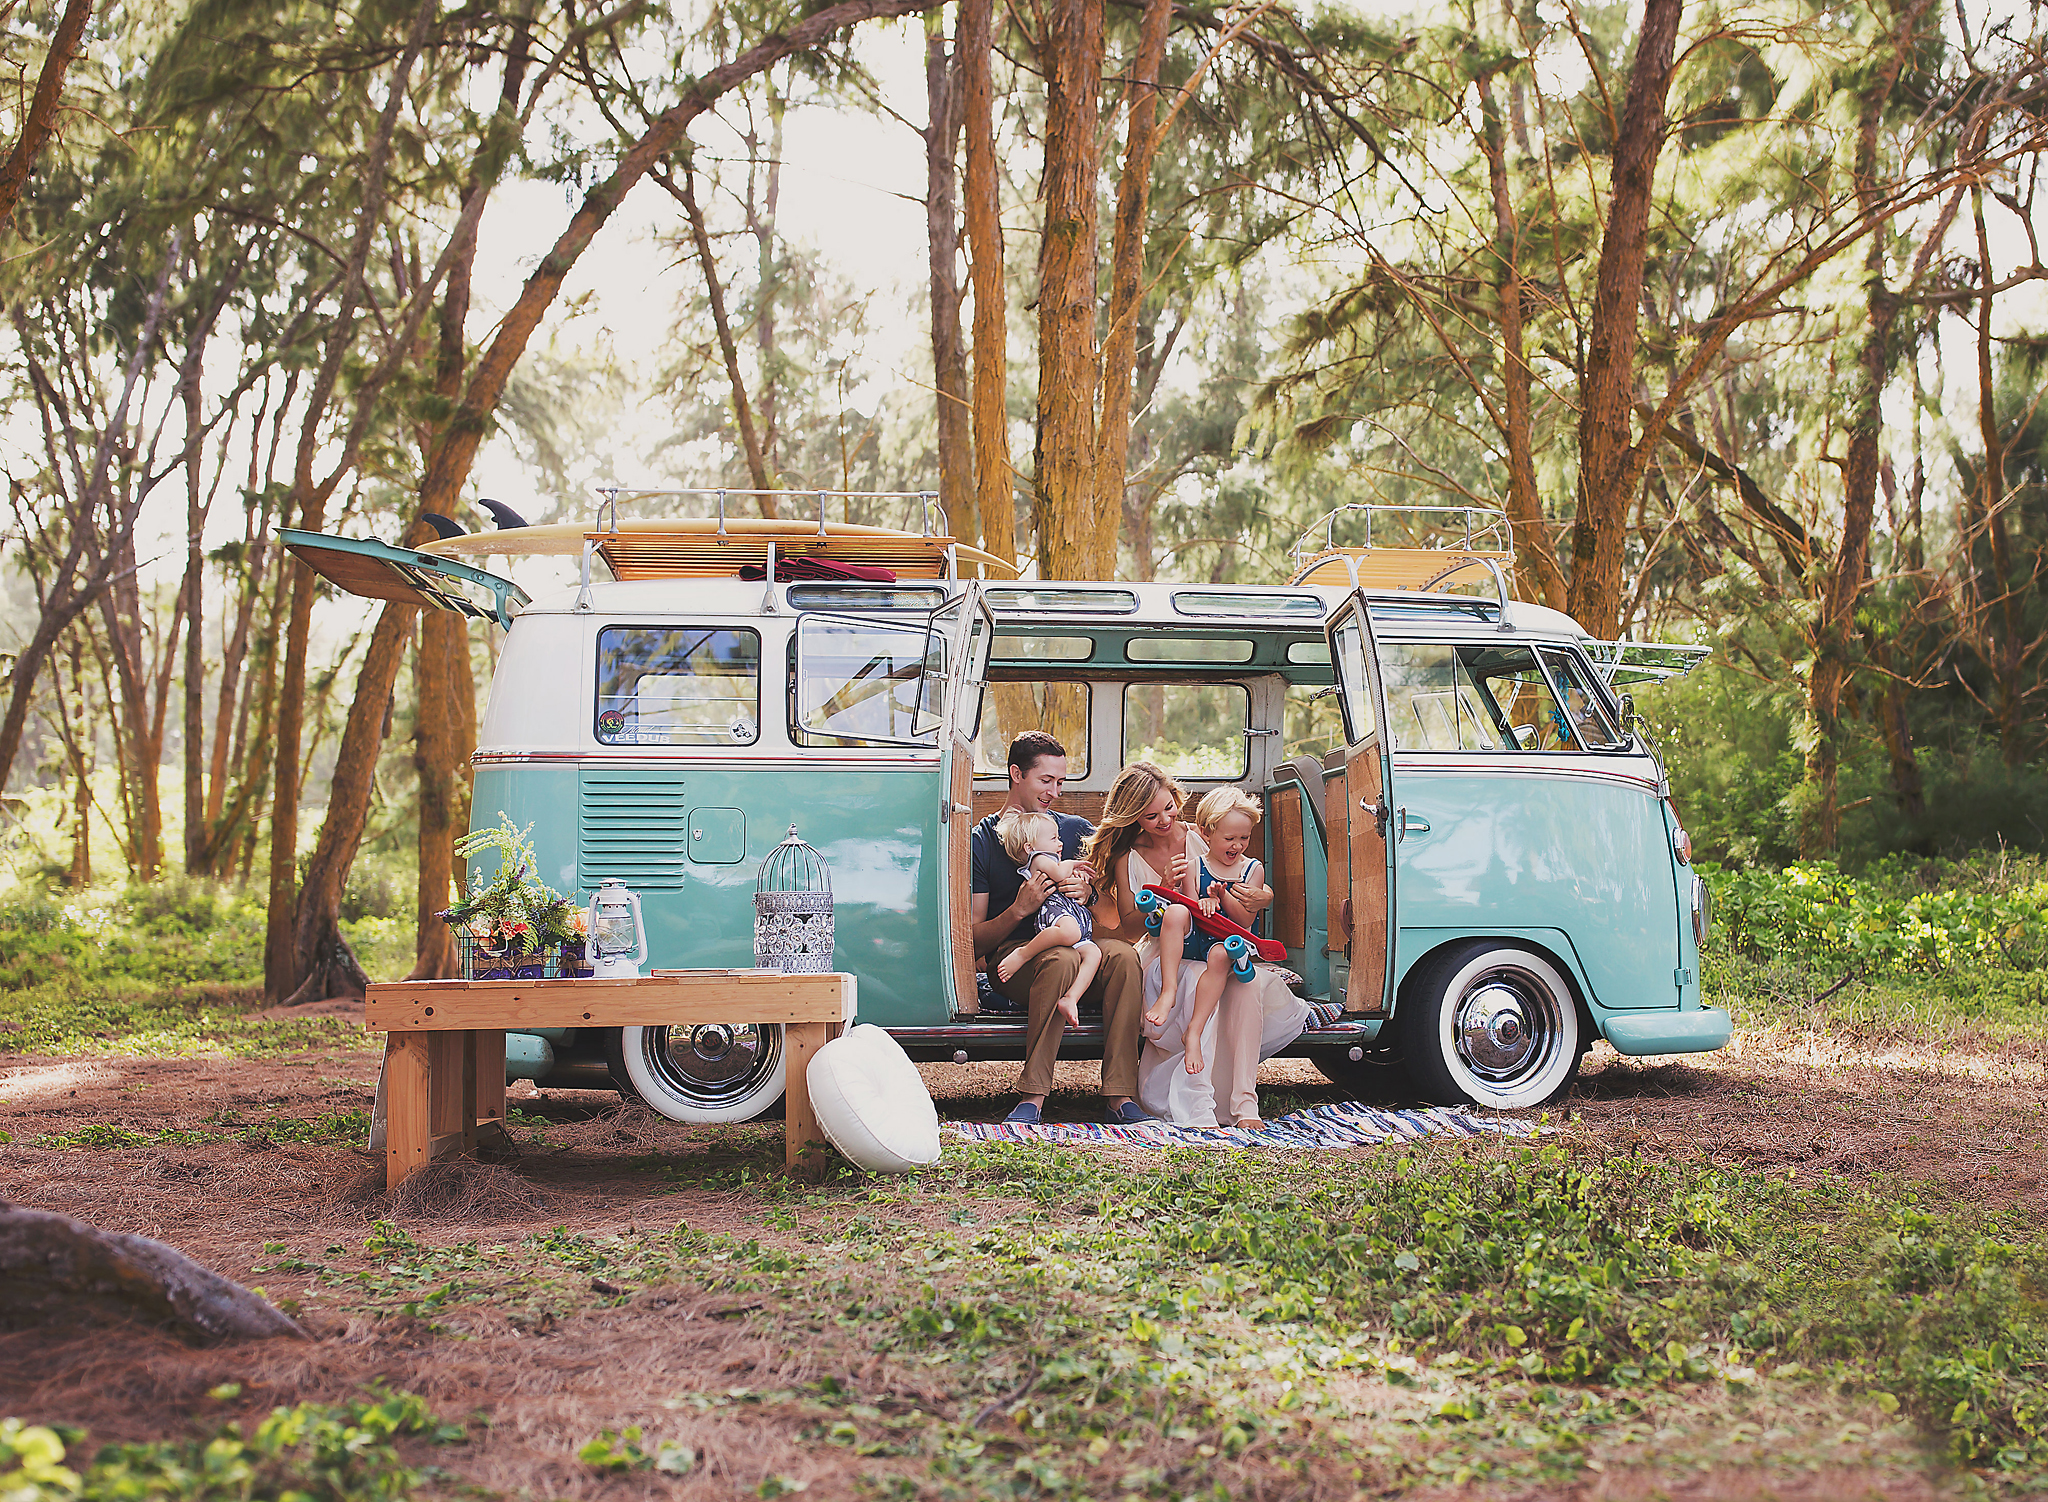 Family of 4 sitting in the open side door of a teal VW Bus parked in a wooded area at Bellows Beach, Wiamanalo, Hawaii.